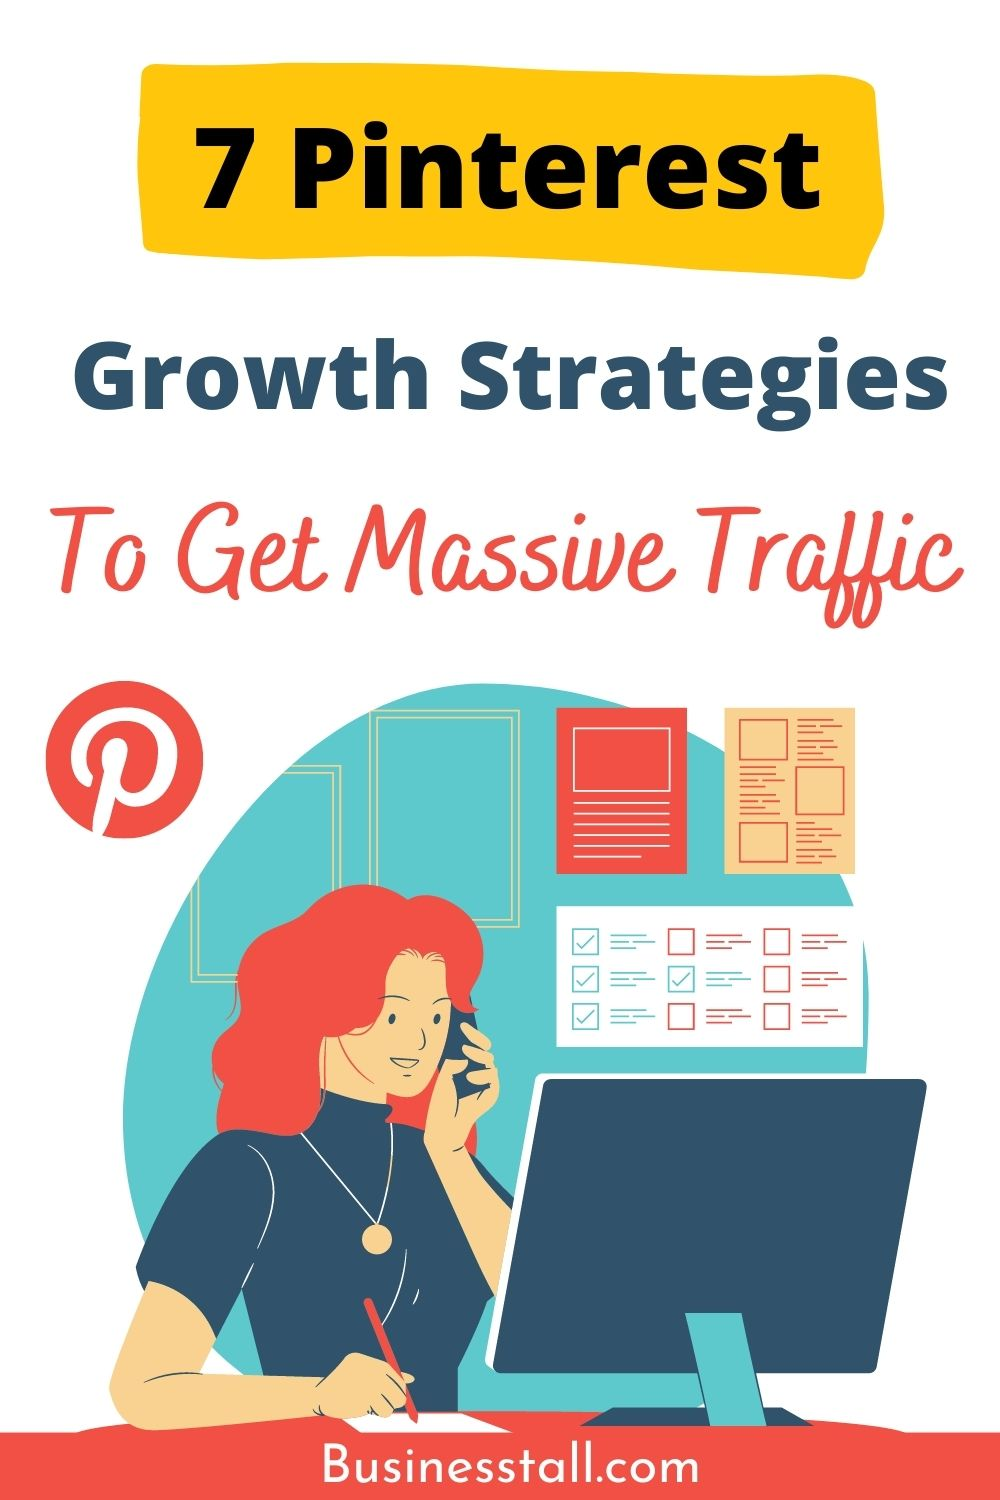 7 Pinterest Growth Strategies to Increase Traffic